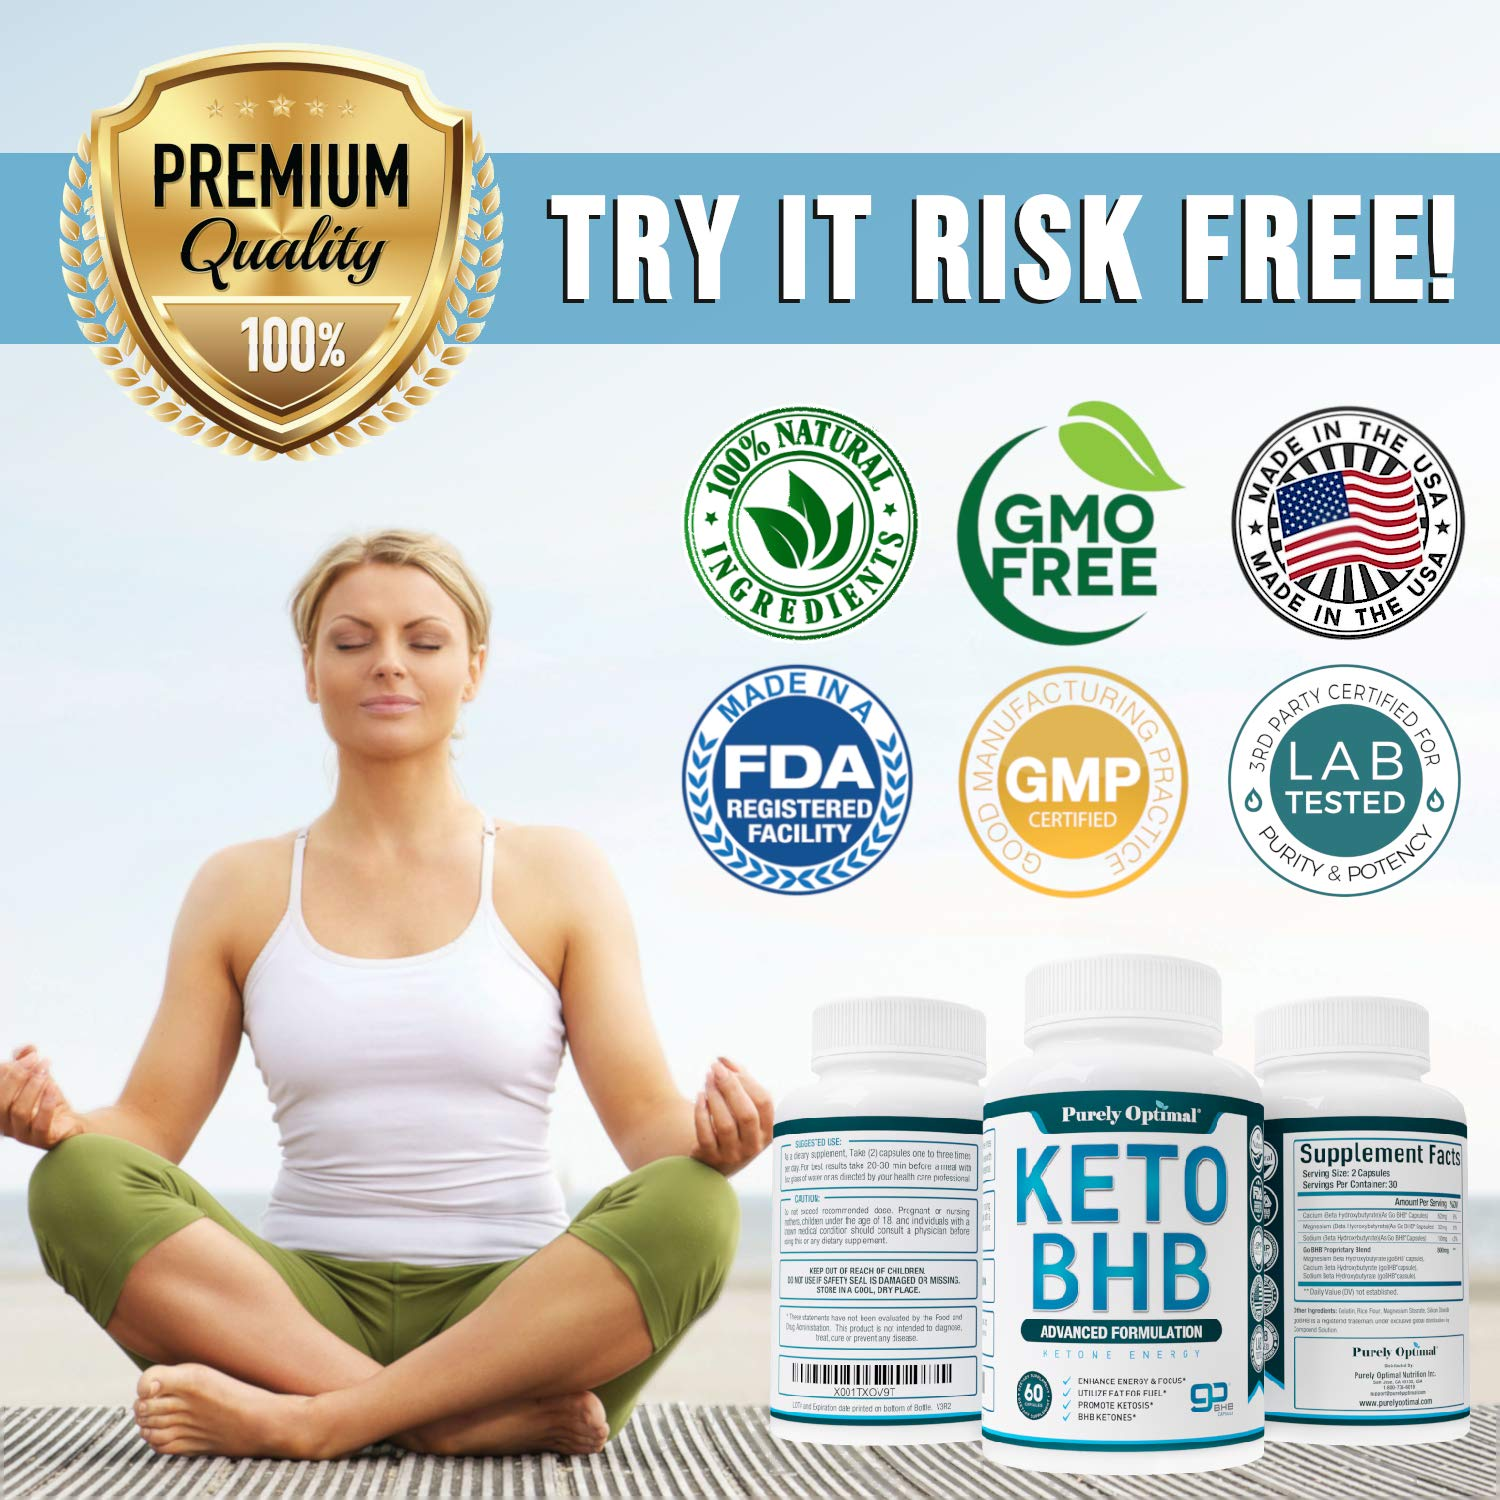 Premium Keto Diet Pills - Utilize Fat for Energy with Ketosis - Boost Energy & Focus, Manage Cravings, Support Metabolism - Keto BHB Supplement for Women and Men - 30 Day Supply by PURELY OPTIMAL (Image #7)